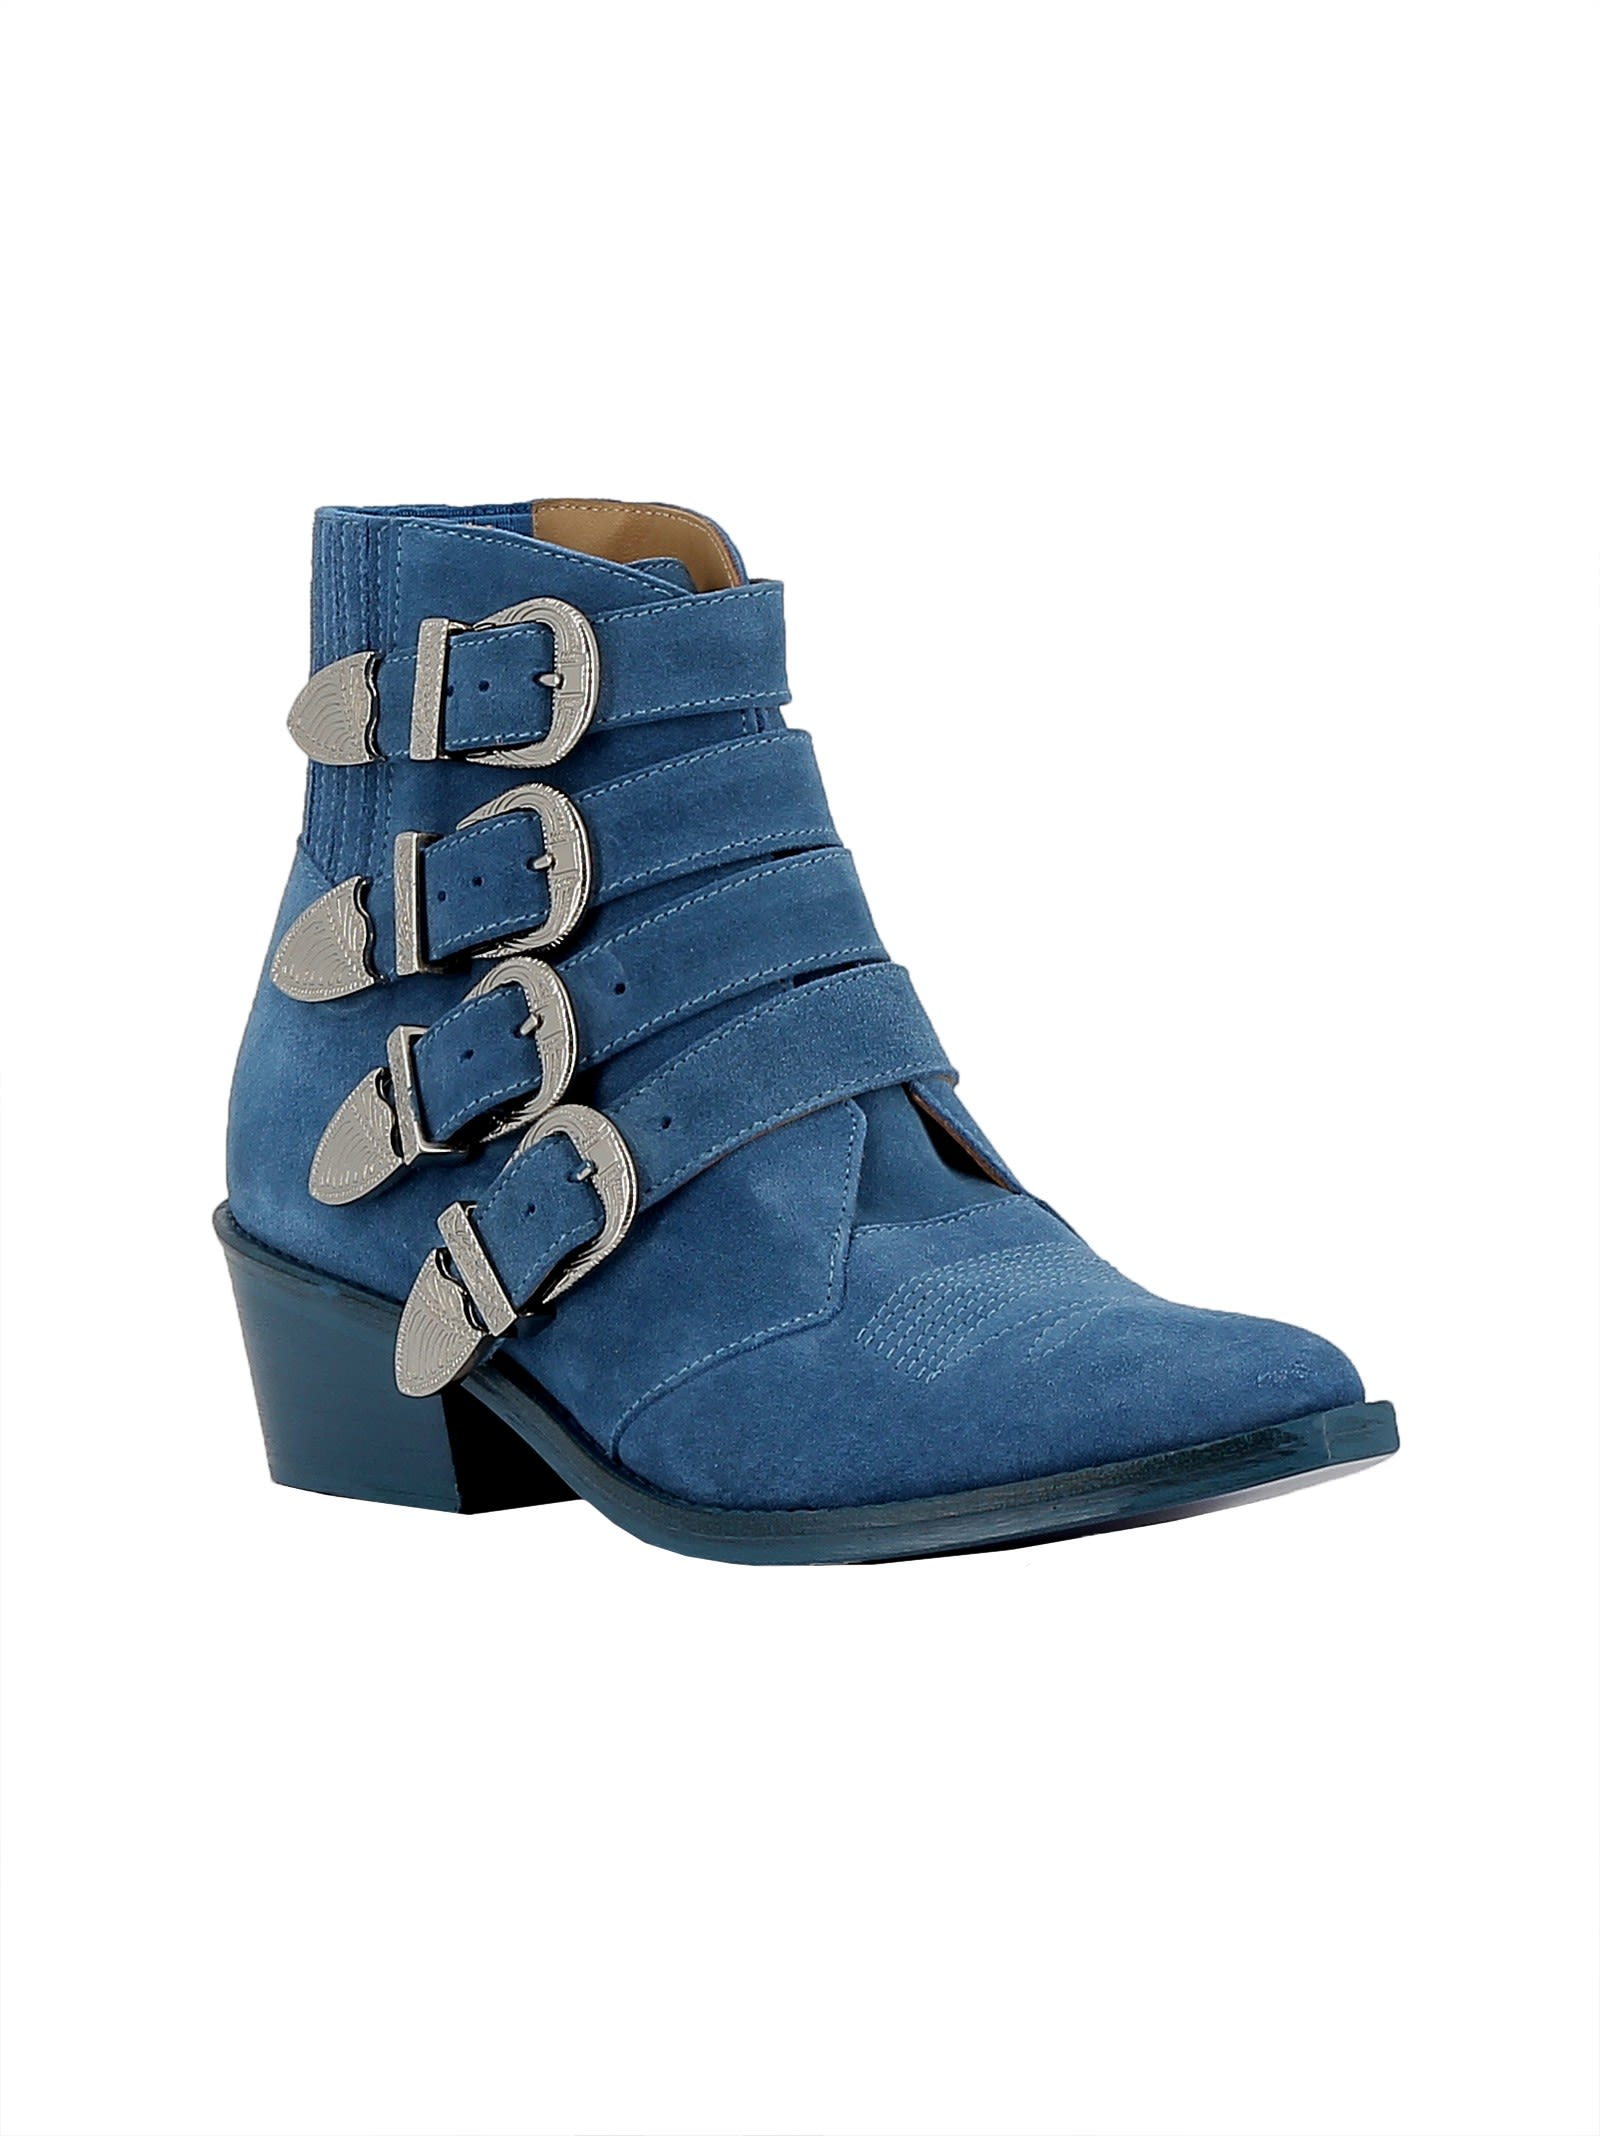 two-tone ankle boots - Blue Toga Archives CgTKCvtZI